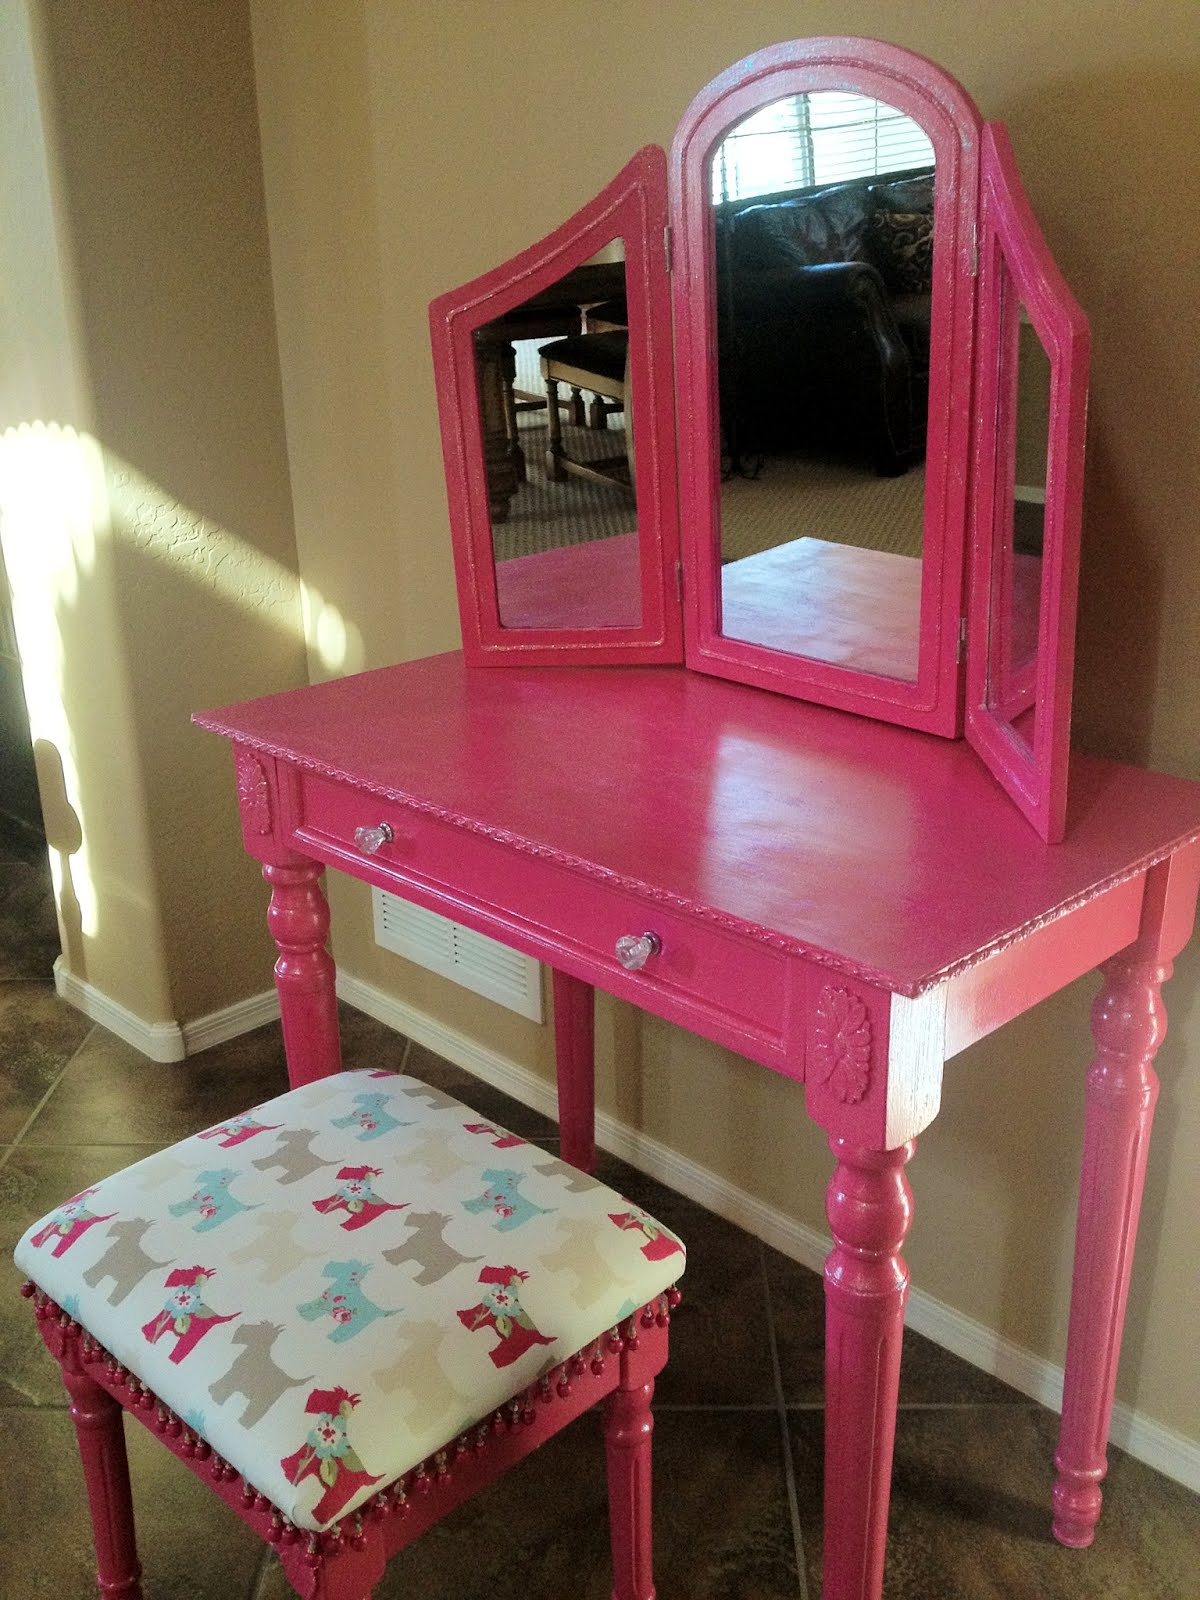 Little Girls Vanity Table And Chair Susan Crabtree April 2012